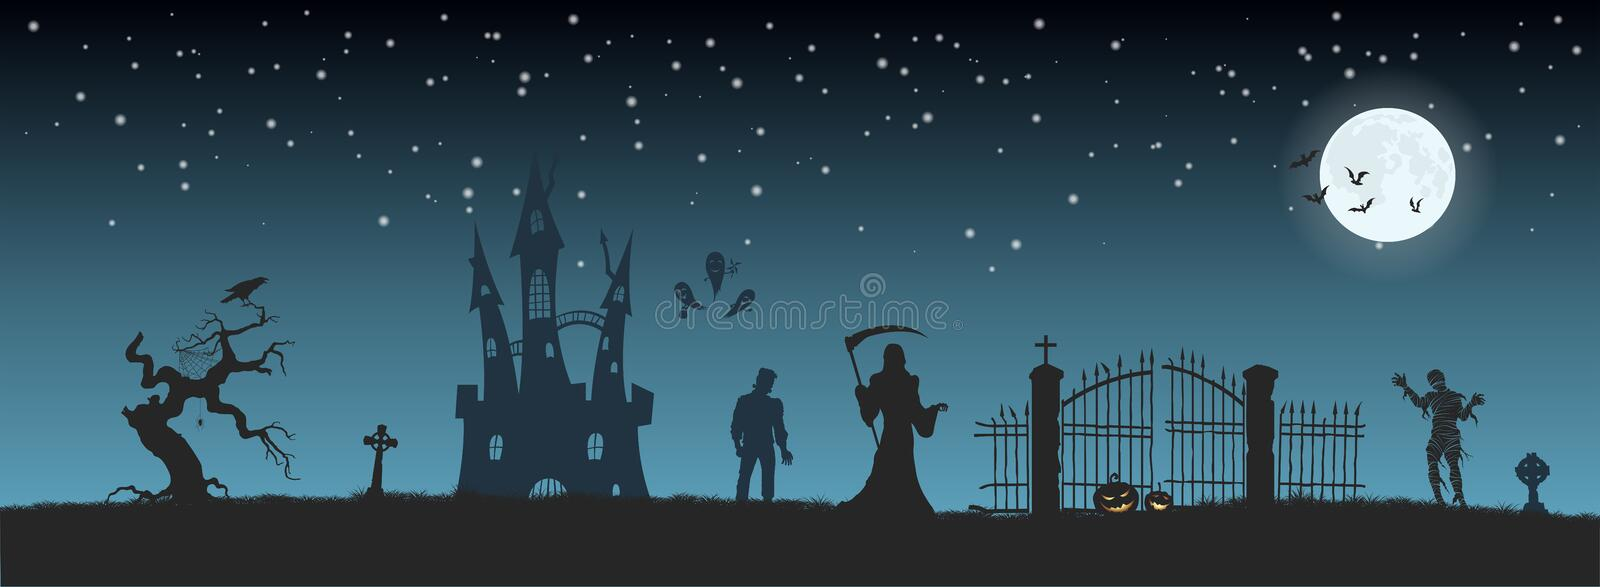 Halloween banner with fantasy silhouettes. Landscape of cemetary with mummy, death and frankenstein. Holiday scene. Of october party. Vector illustration royalty free illustration